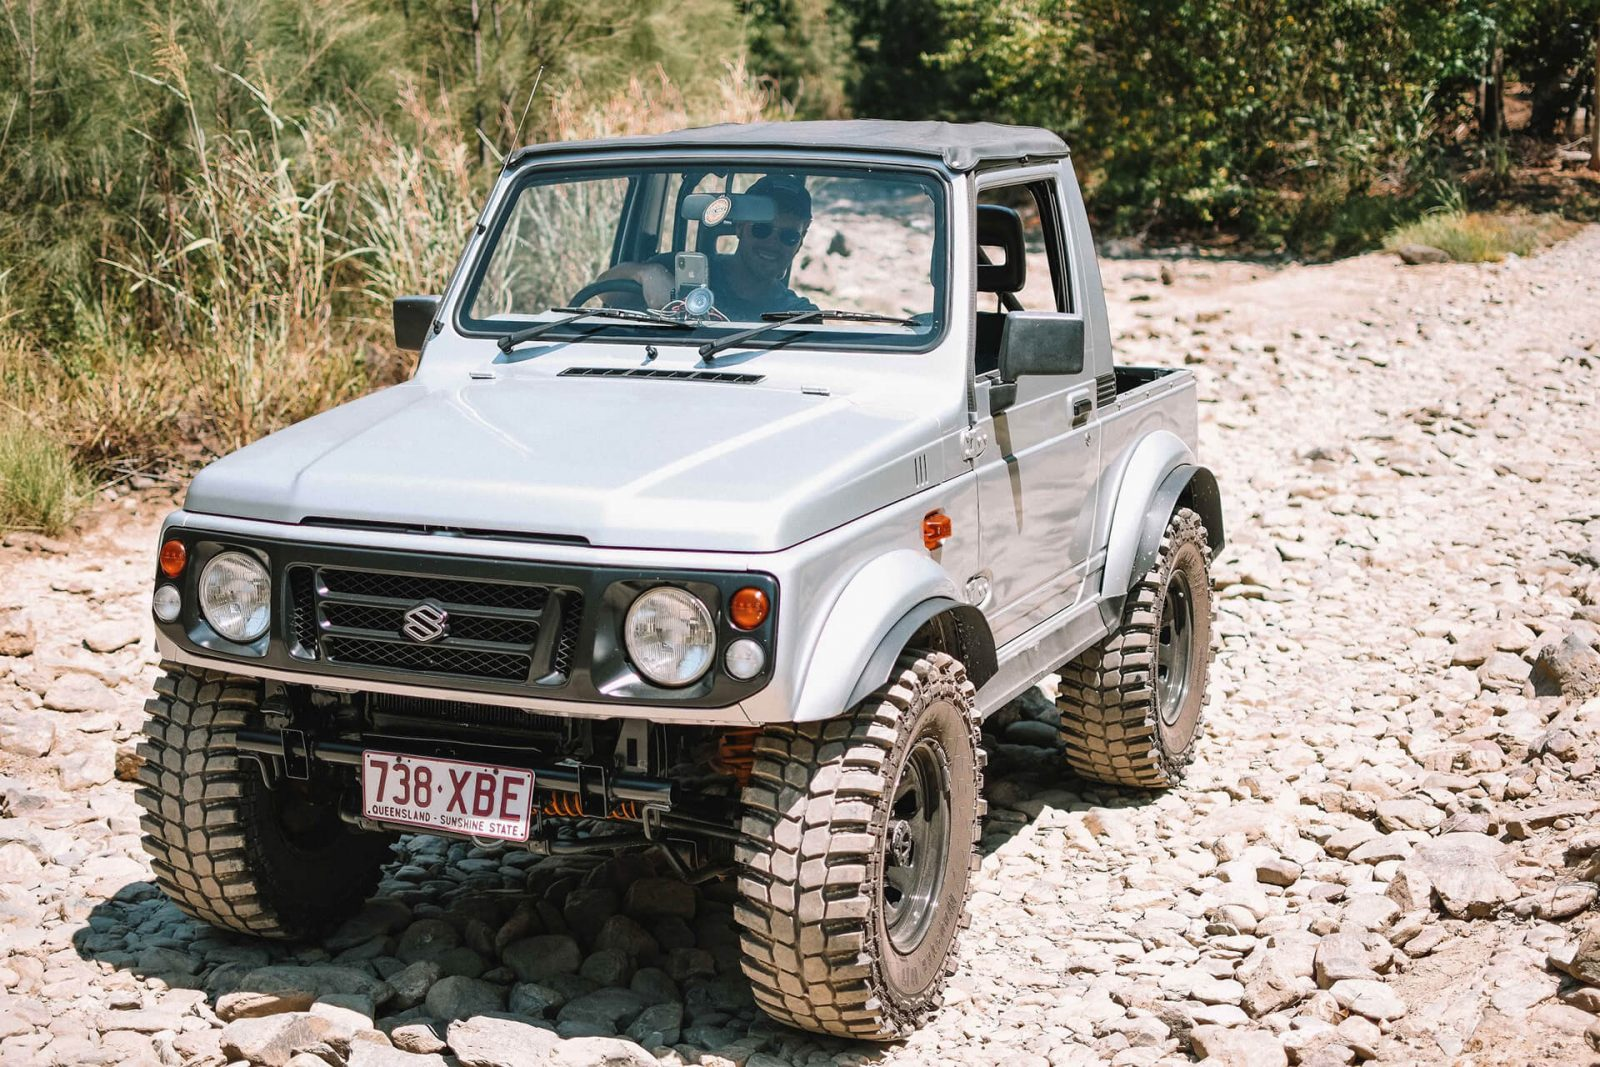 1997 Suzuki Sierra SJ80 – a Lot of Off-Road Fun in a Tiny Package